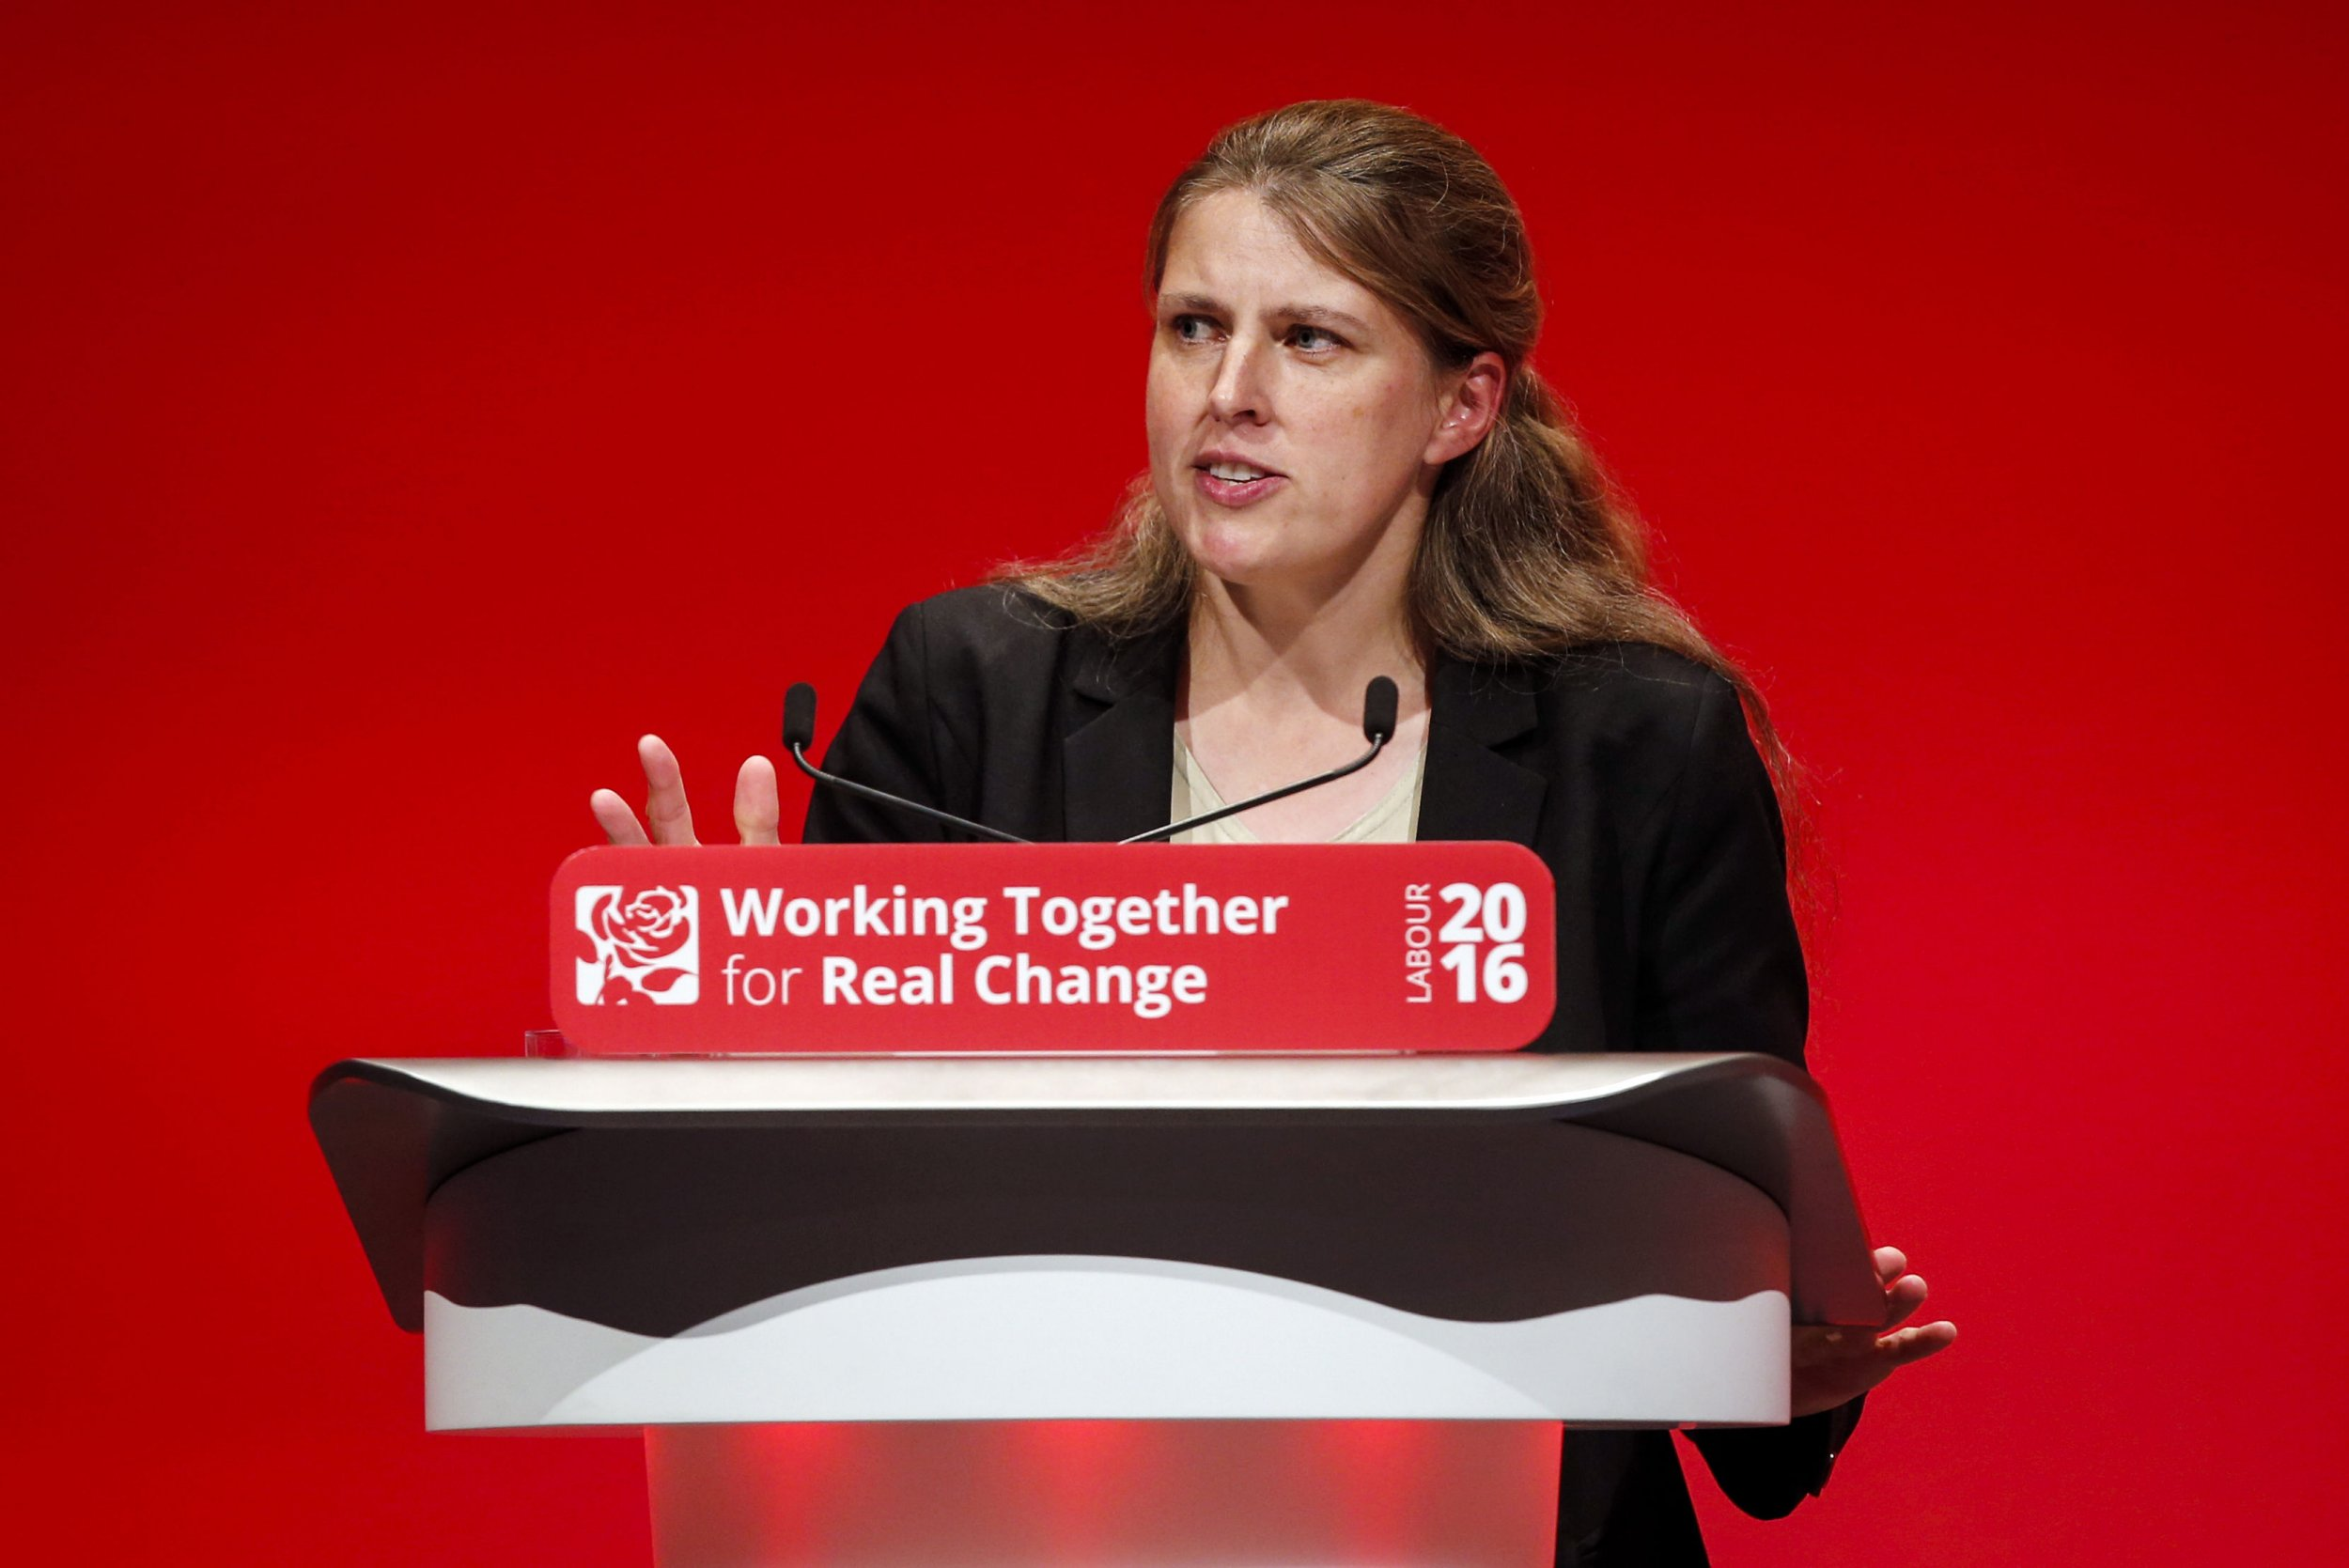 File photo dated 25/09/16 of Shadow environment secretary Rachael Maskell who has resigned from the shadow cabinet after revealing she will defy the Labour whip to vote against triggering Article 50 to formally begin Brexit. PRESS ASSOCIATION Photo. Issue date: Wednesday February 1, 2017. See PA story POLITICS Brexit. Photo credit should read: Danny Lawson/PA Wire